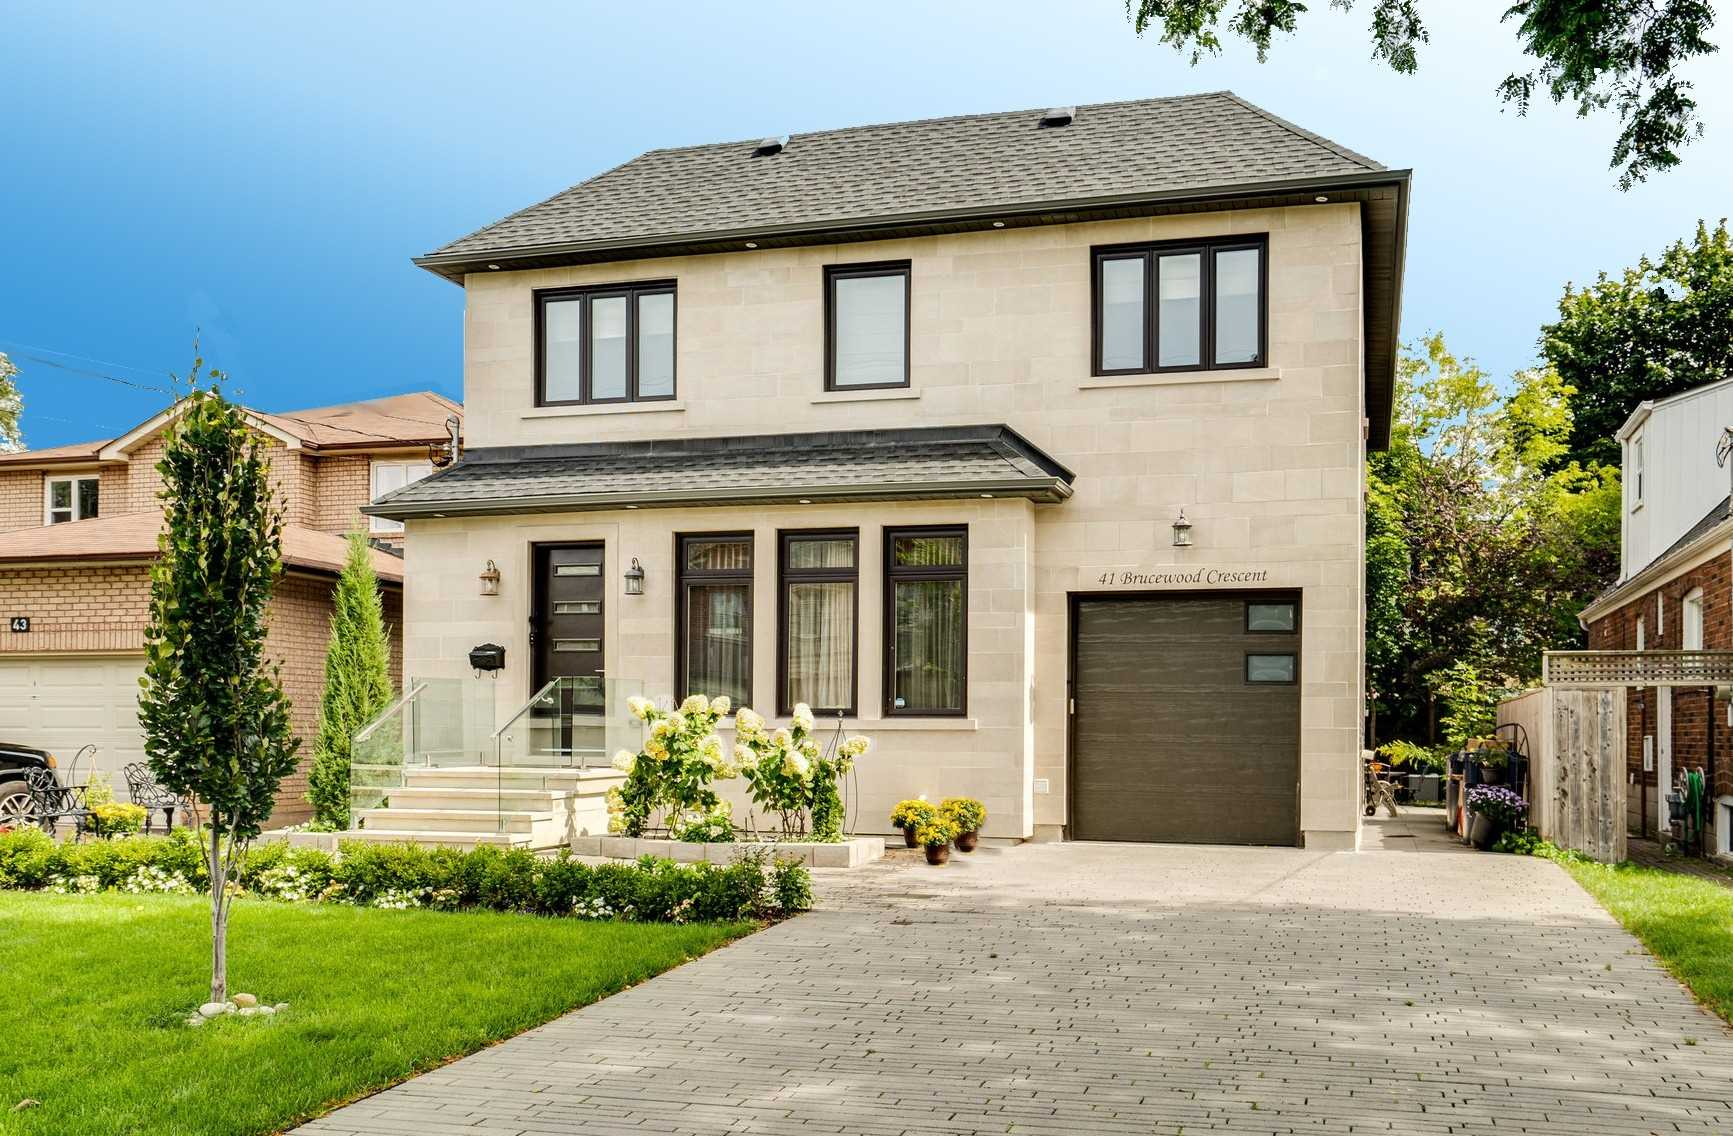 41 Brucewood Cres, Toronto, Ontario M6A2G7, 4 Bedrooms Bedrooms, ,6 BathroomsBathrooms,Detached,For Sale,Brucewood,C5374264